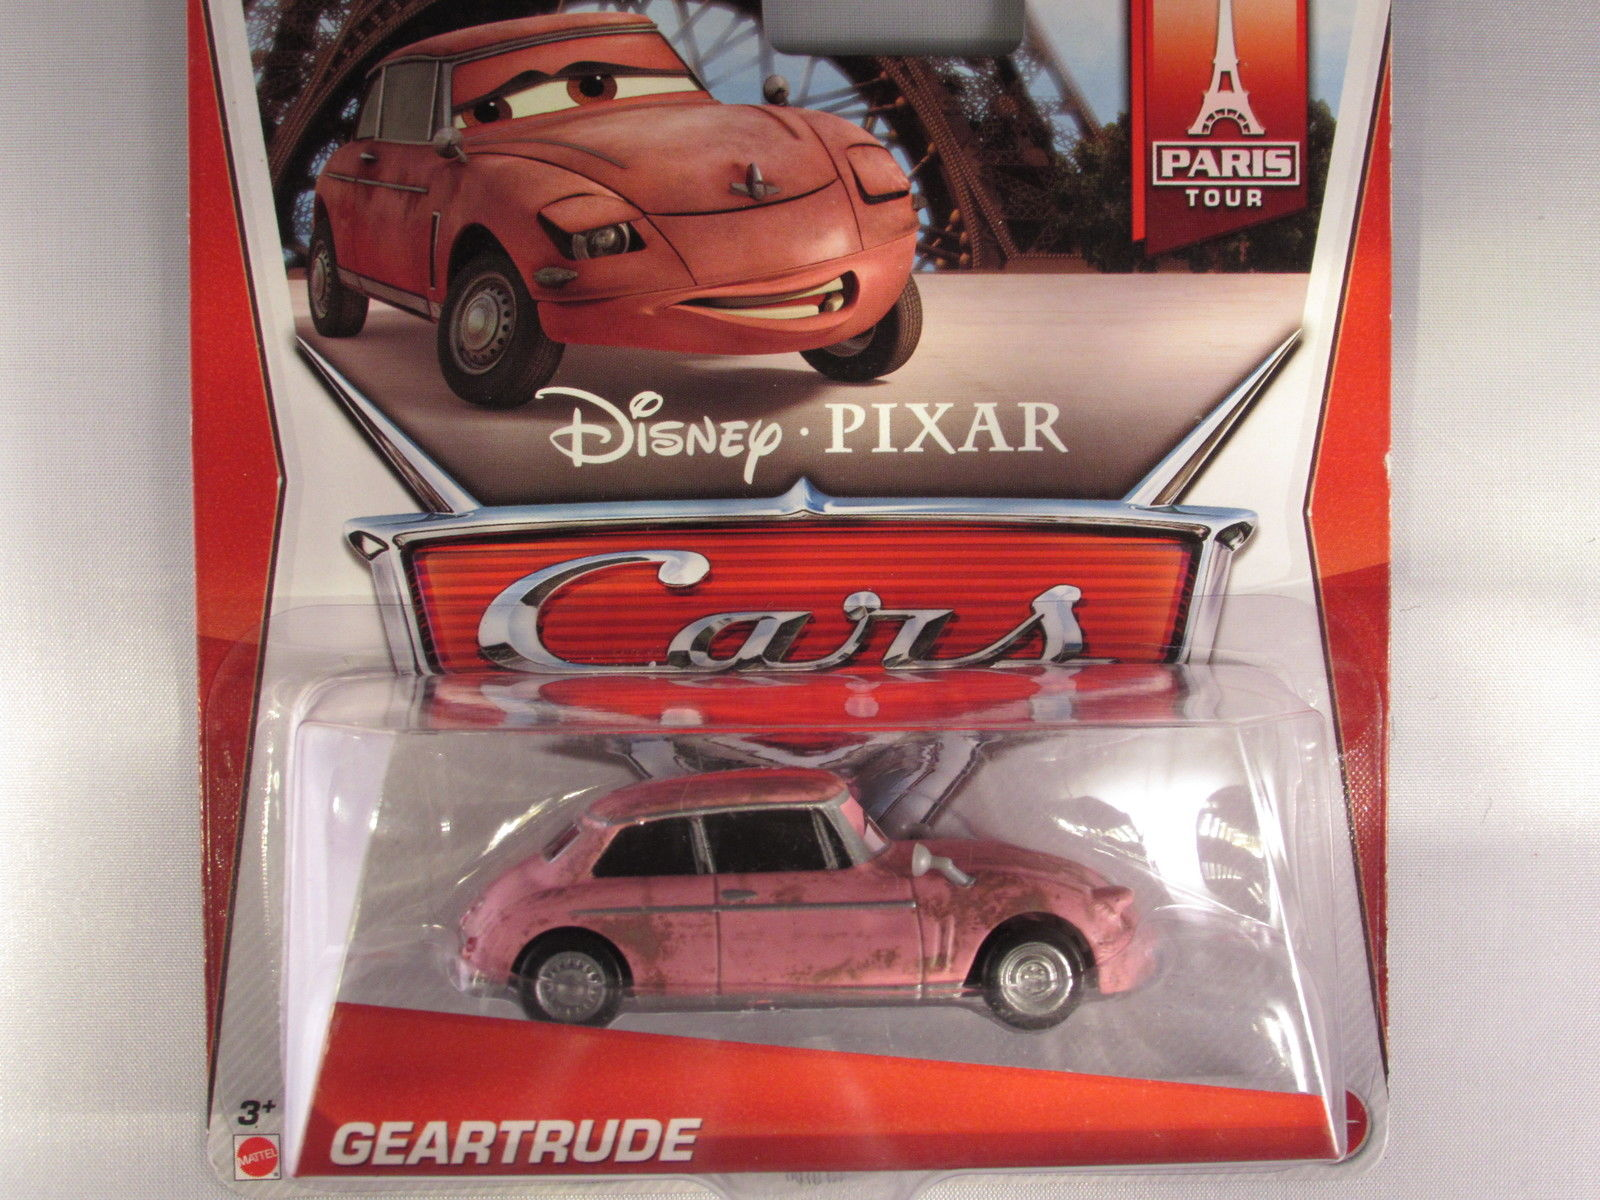 DISNEY PIXAR CARS PARIS TOUR GEARTRUDE